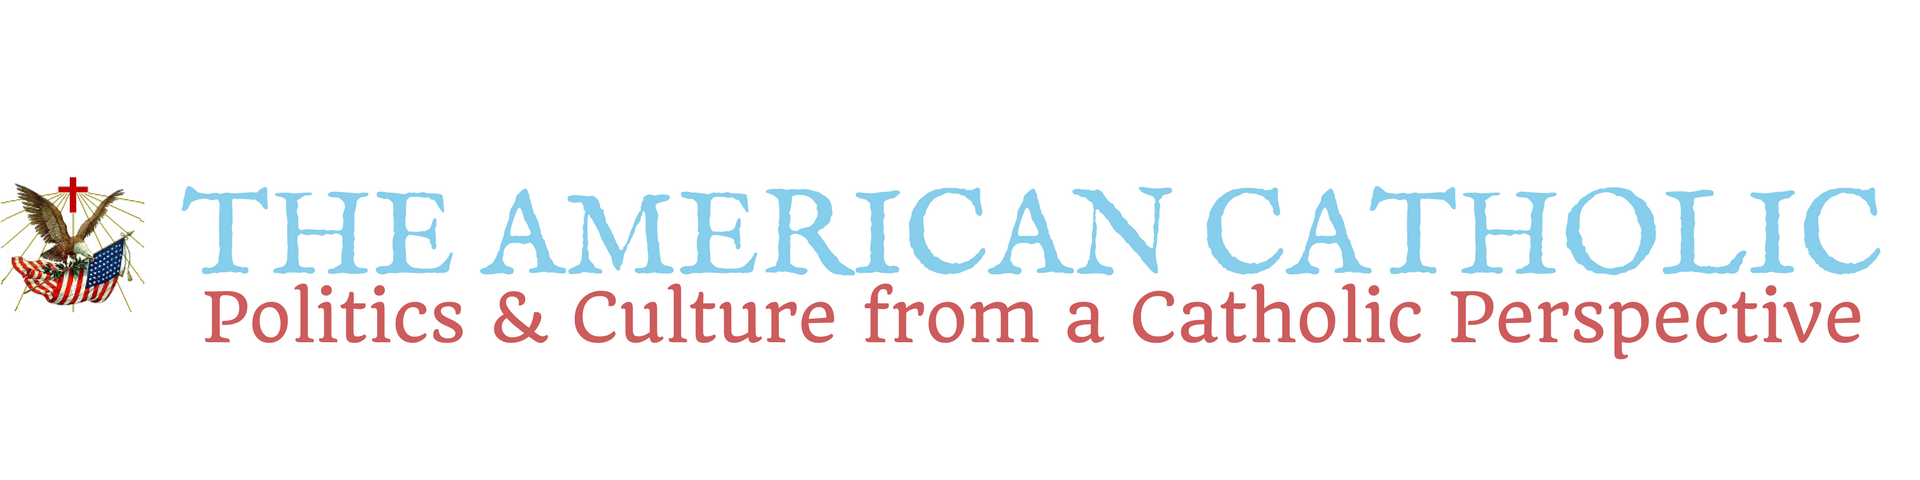 The American Catholic